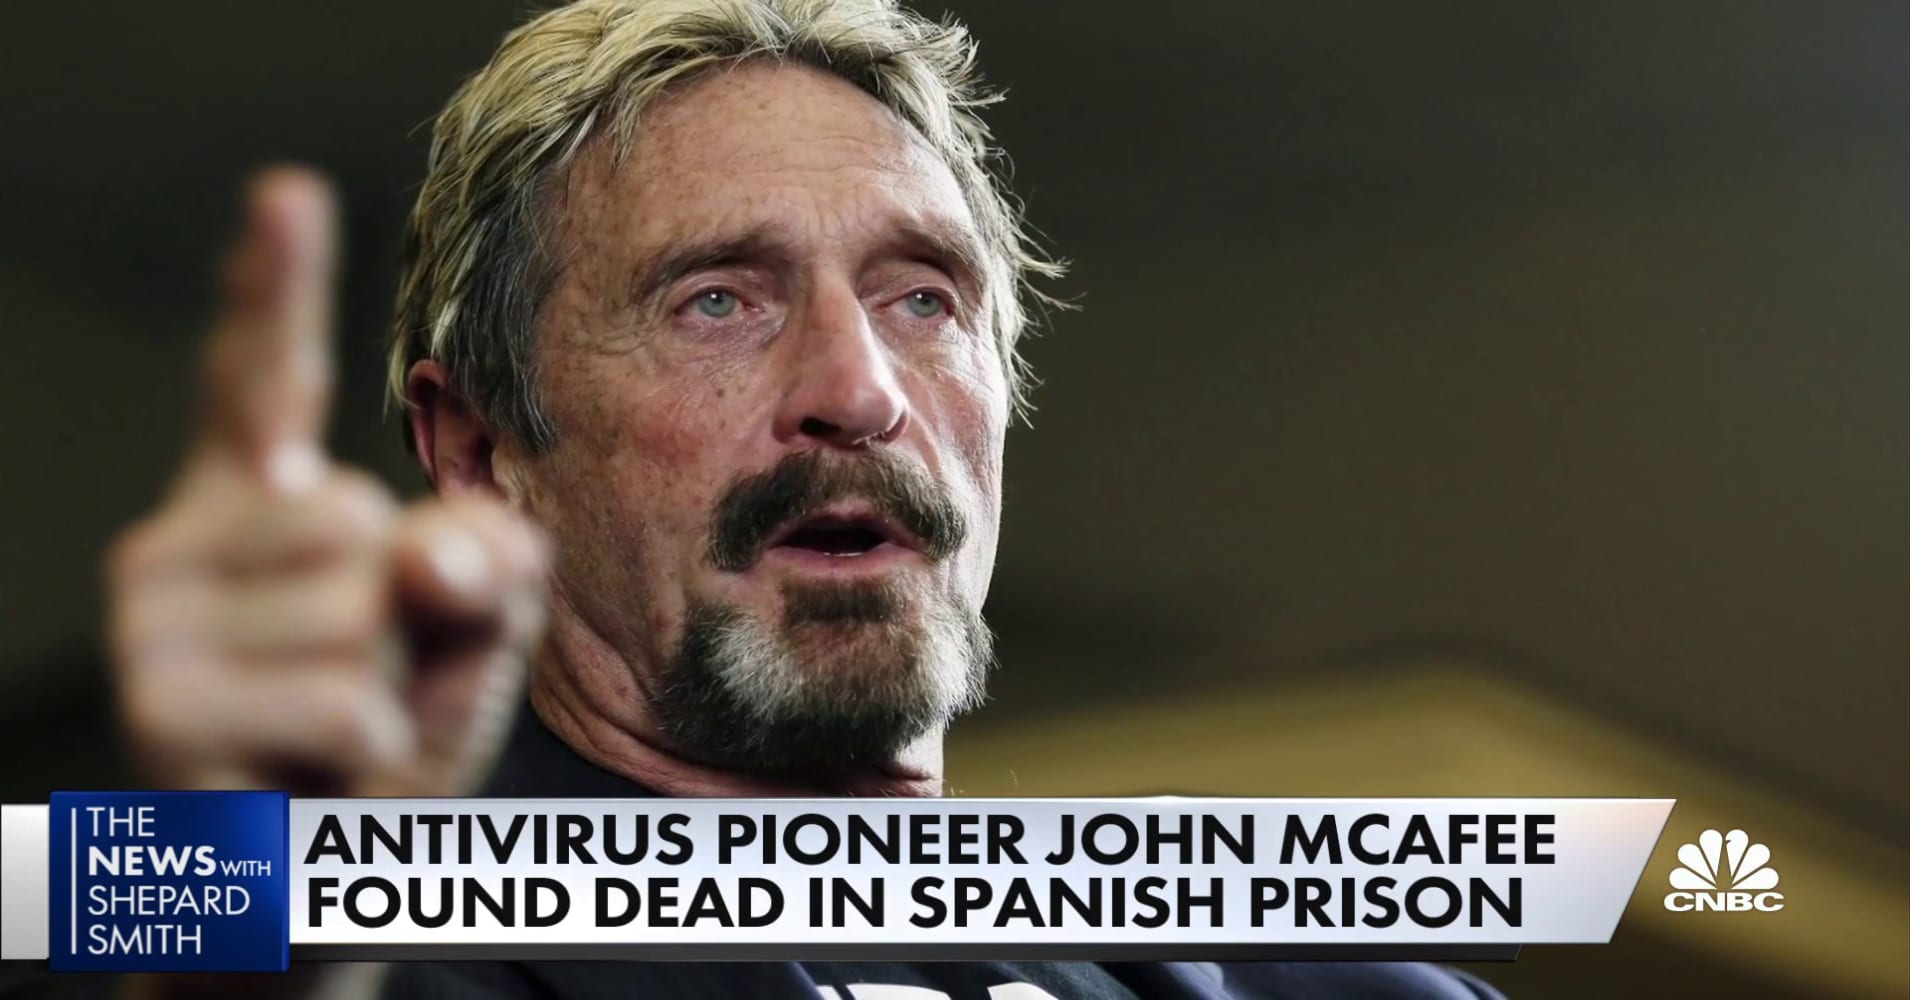 John McAfee with a beard looking at the camera: Antivirus pioneer John McAfee was found dead on Wednesday in his prison cell in Spain. He was 75 years old. His death is still being investigated.